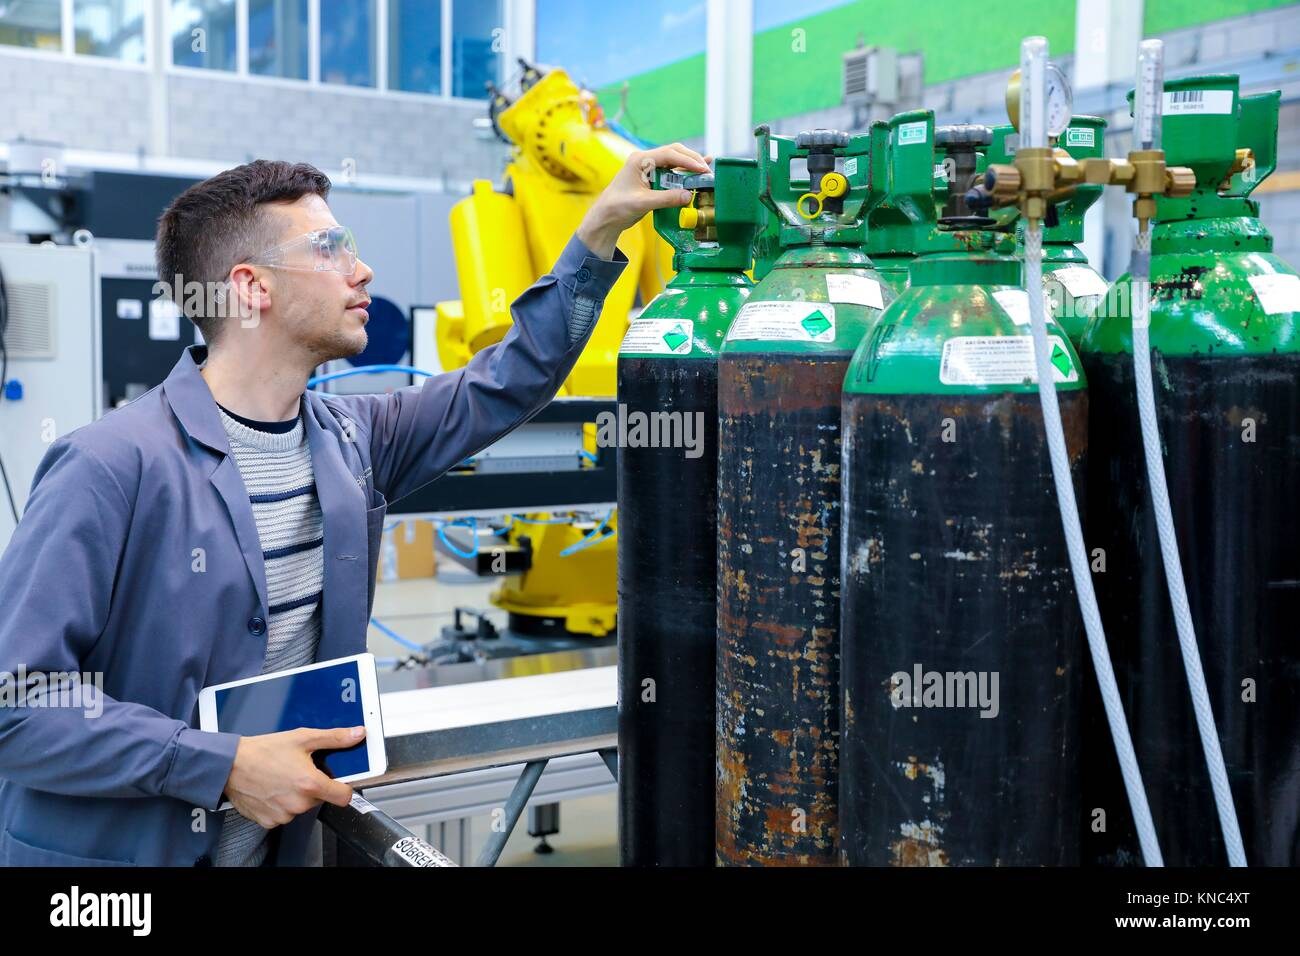 Tanks for compressed gas at high pressure, Argon compressed, Industry, Tecnalia Research & innovation, Technology - Stock Image